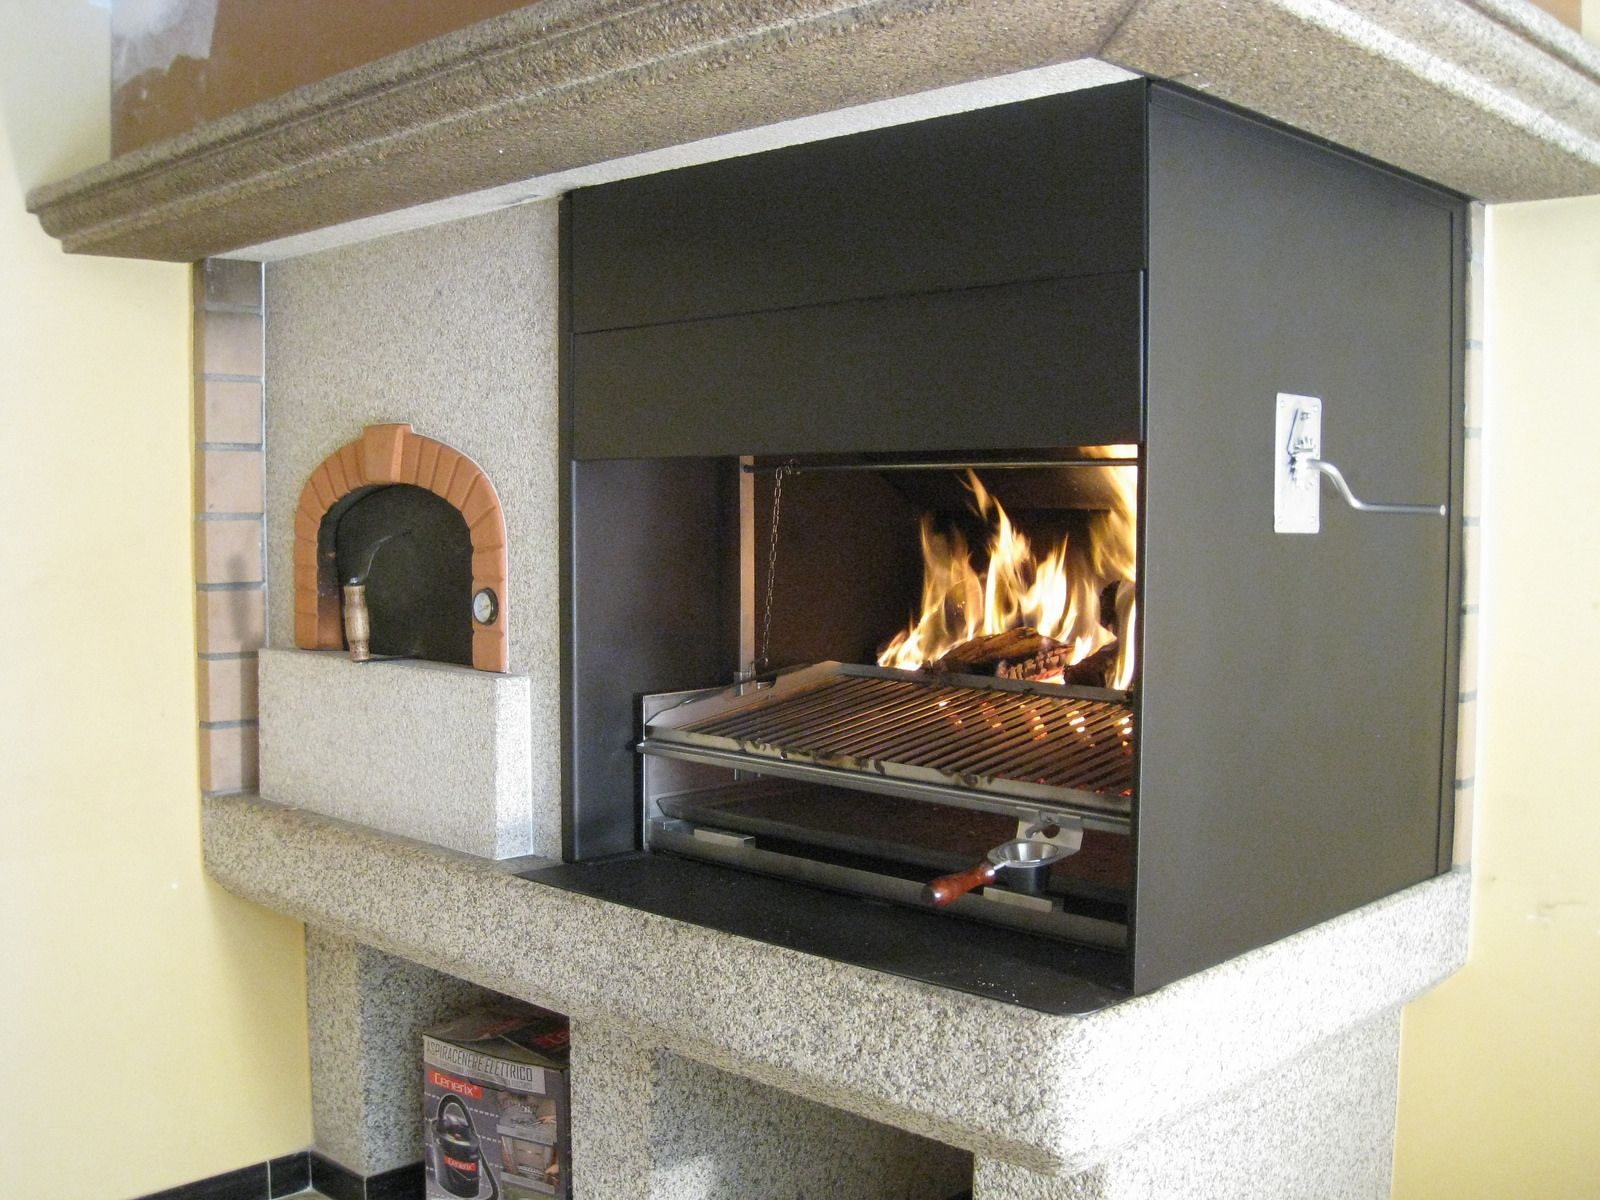 Horno punto alfapizza barbacoa kitchens and fire pit grill - Barbacoas de obra ...